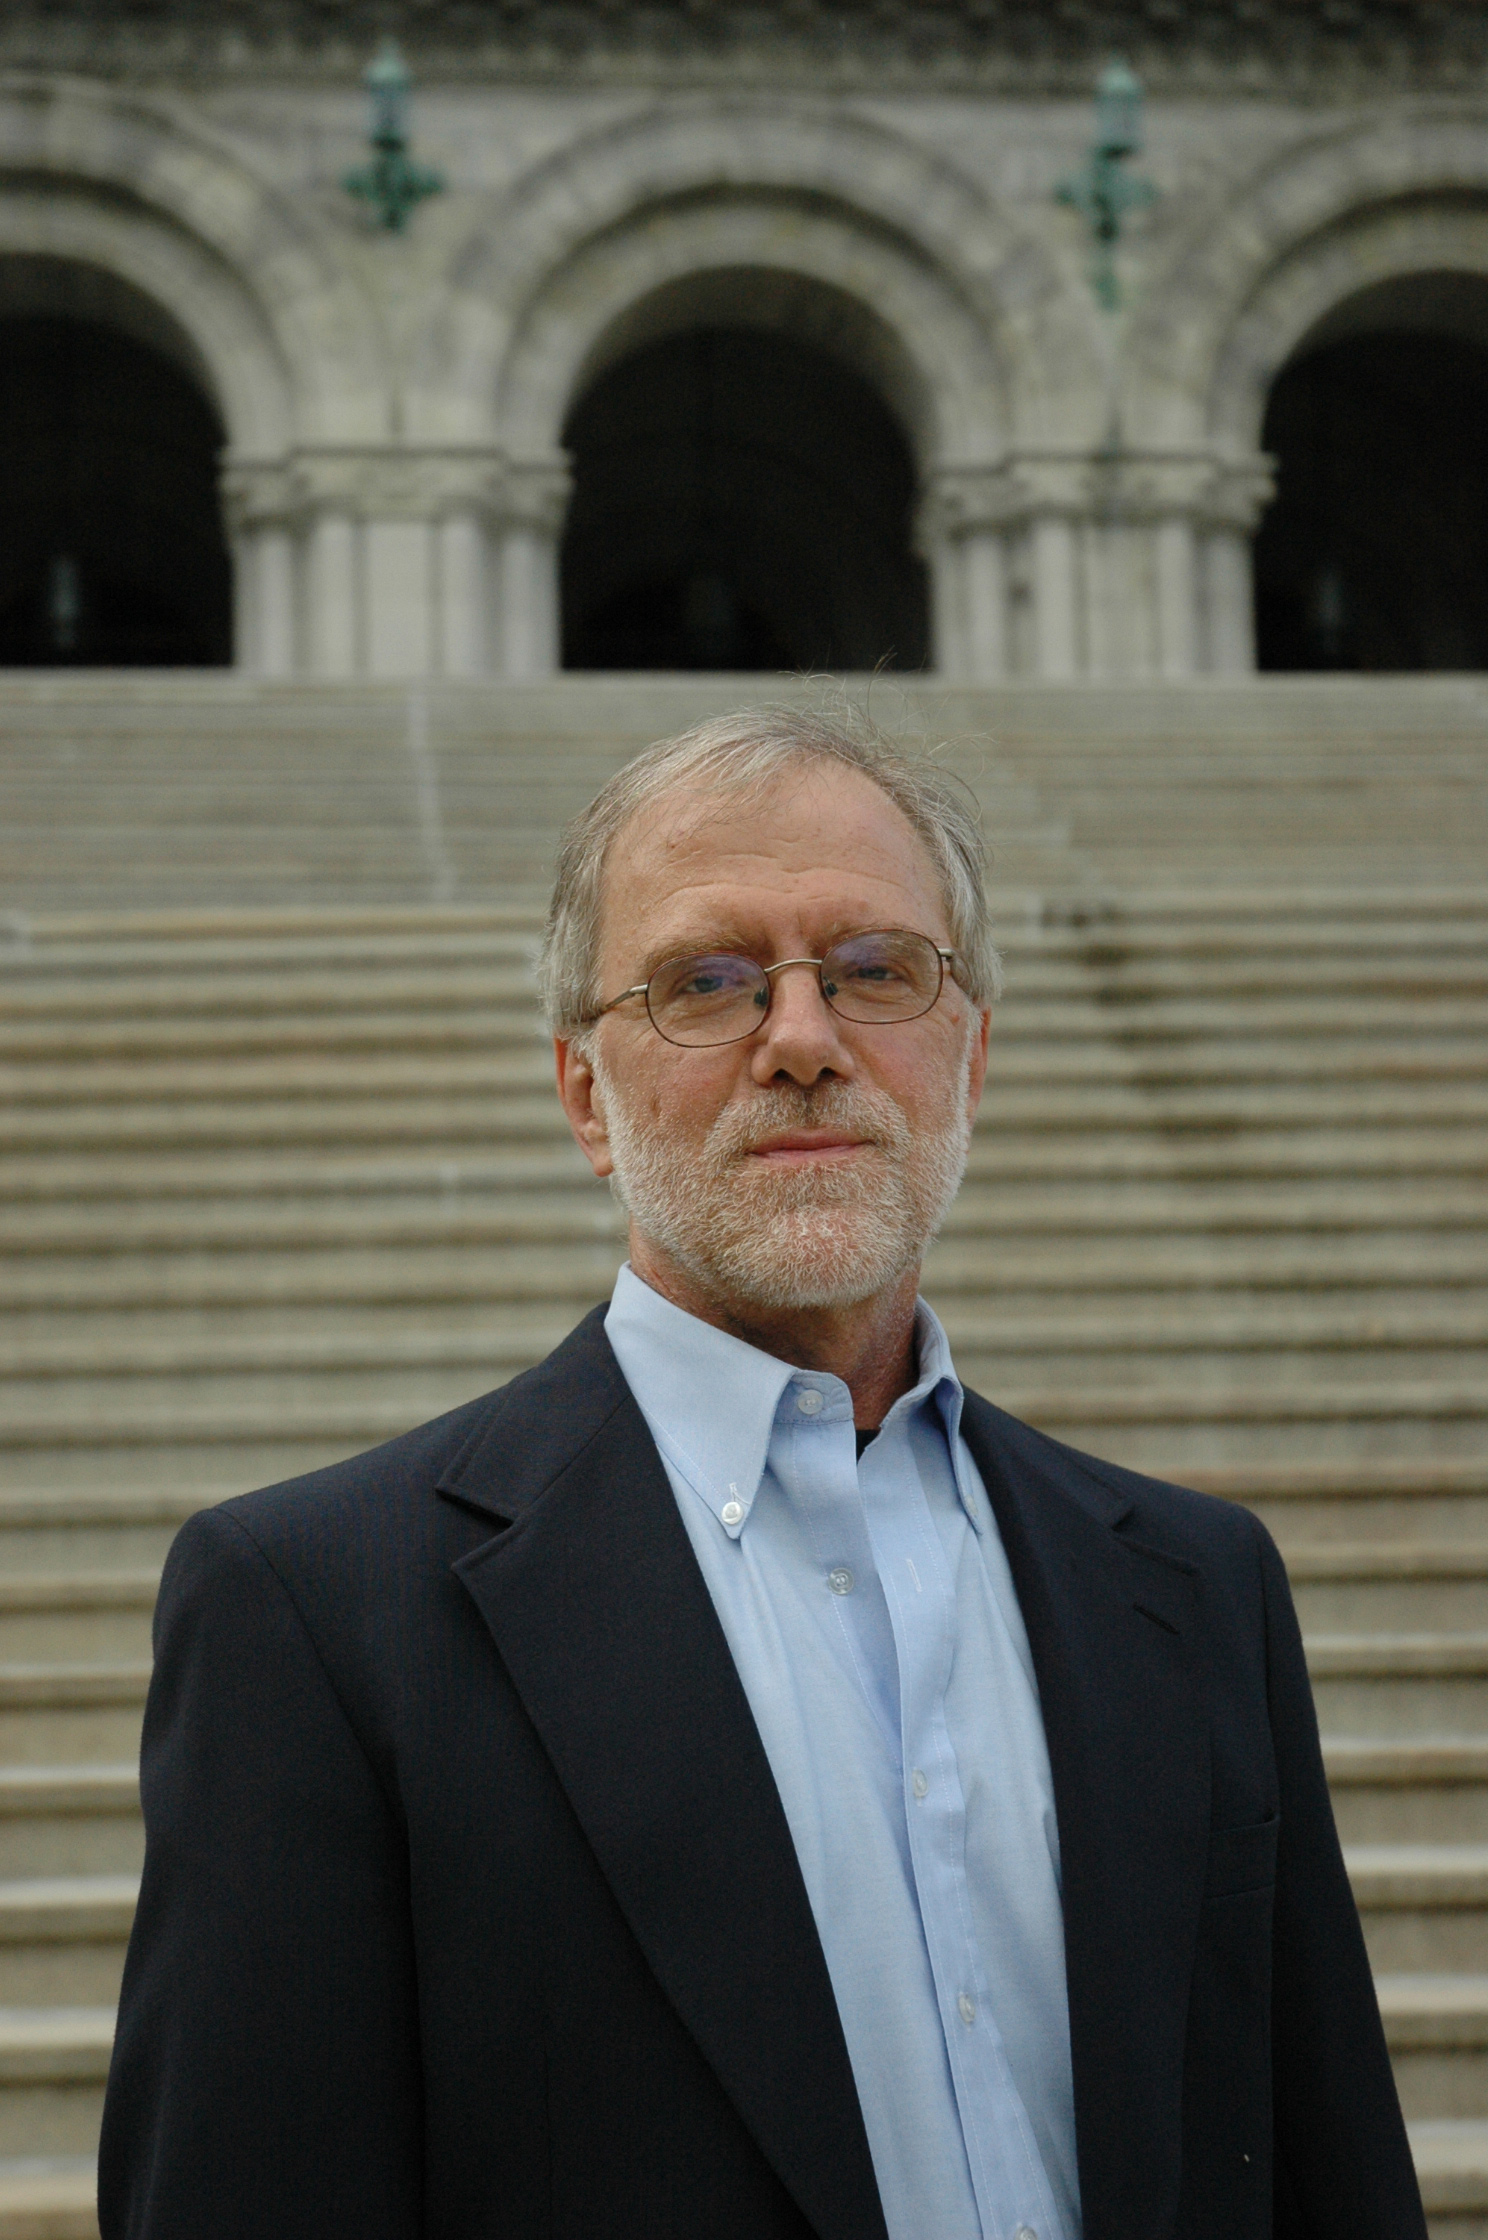 Howie-Hawkins-on-steps.jpg